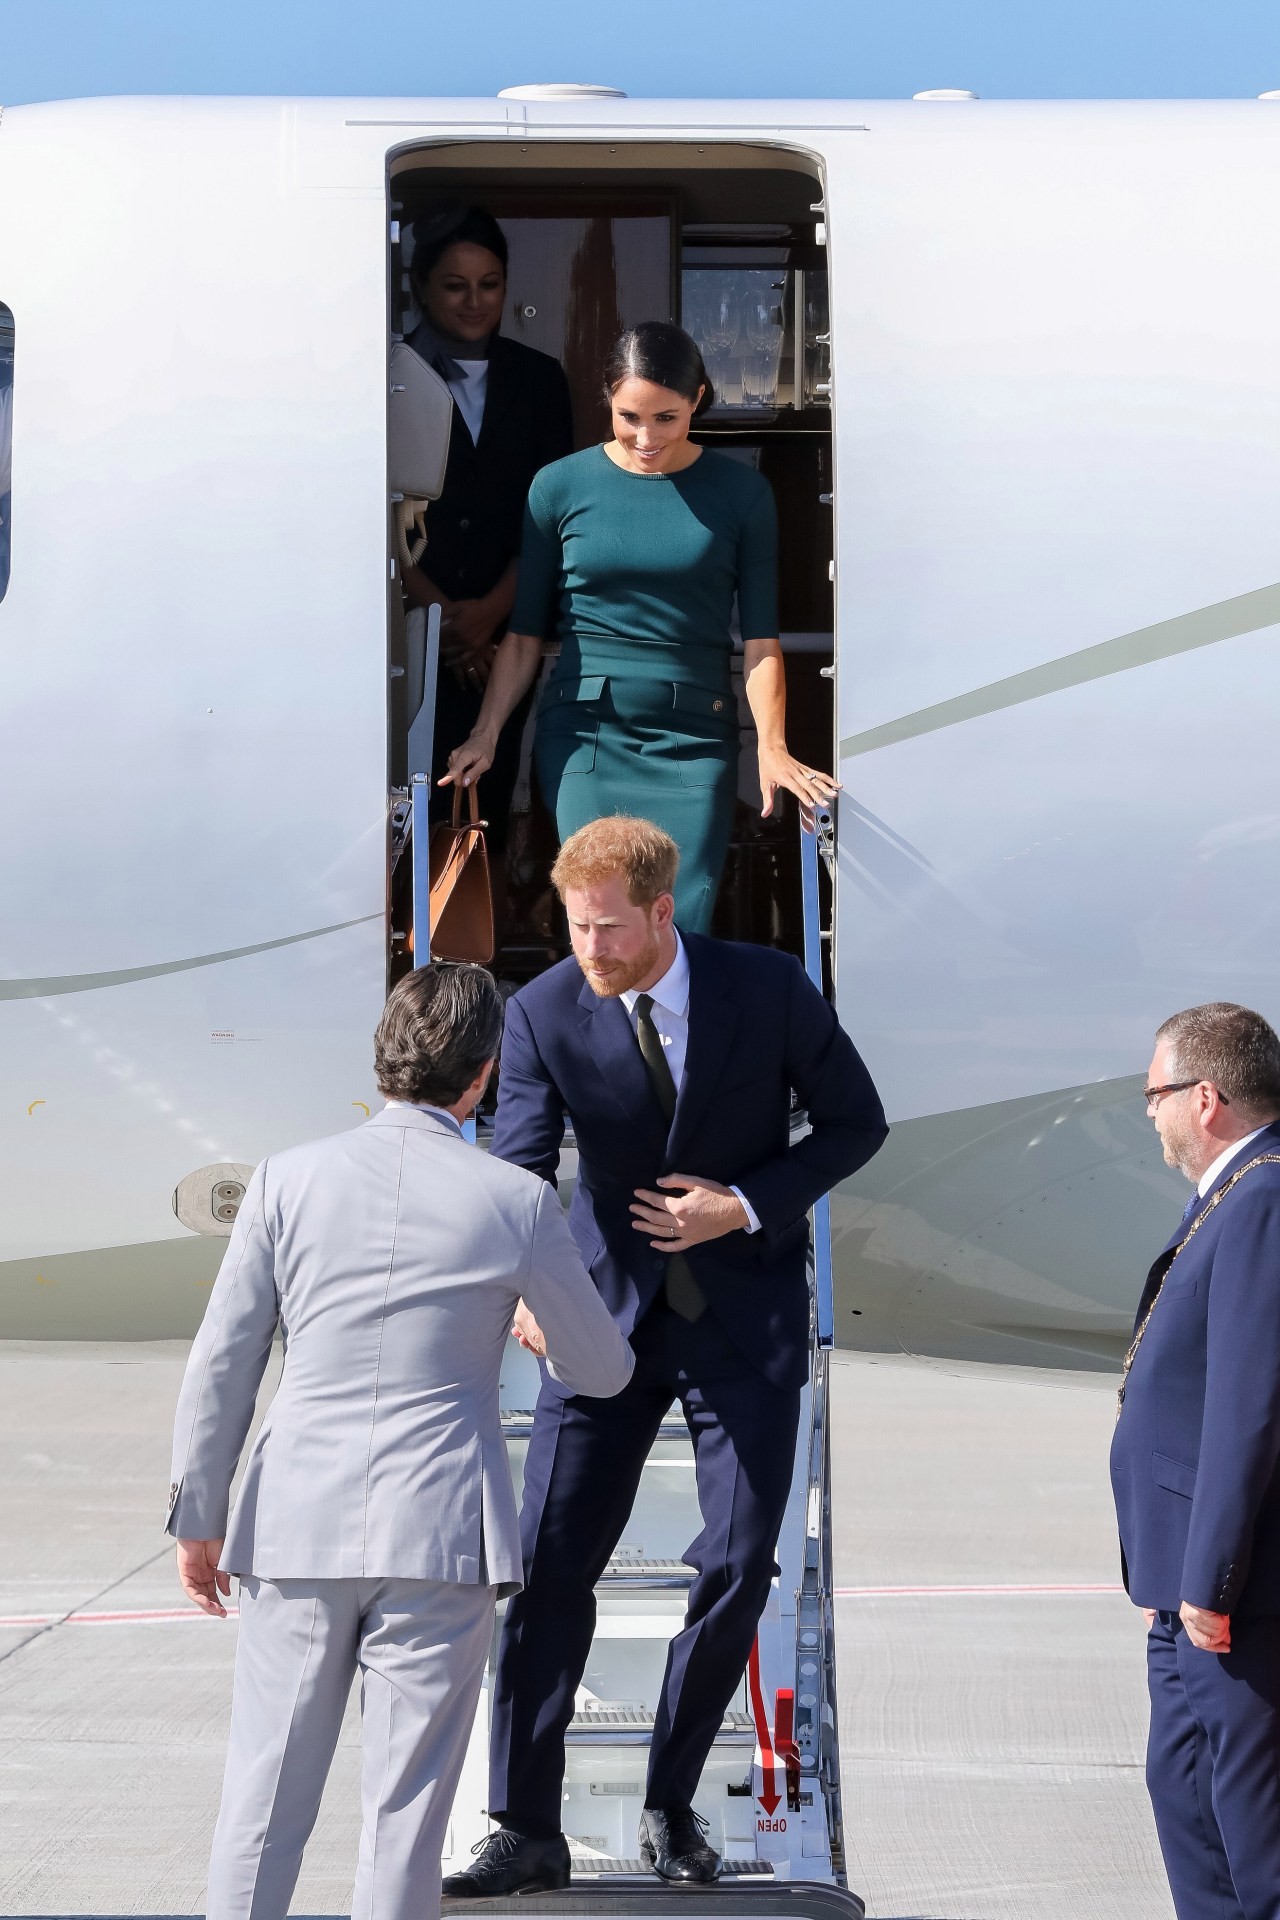 Meghan Markle's travel advice includes one helpful jet lag tip